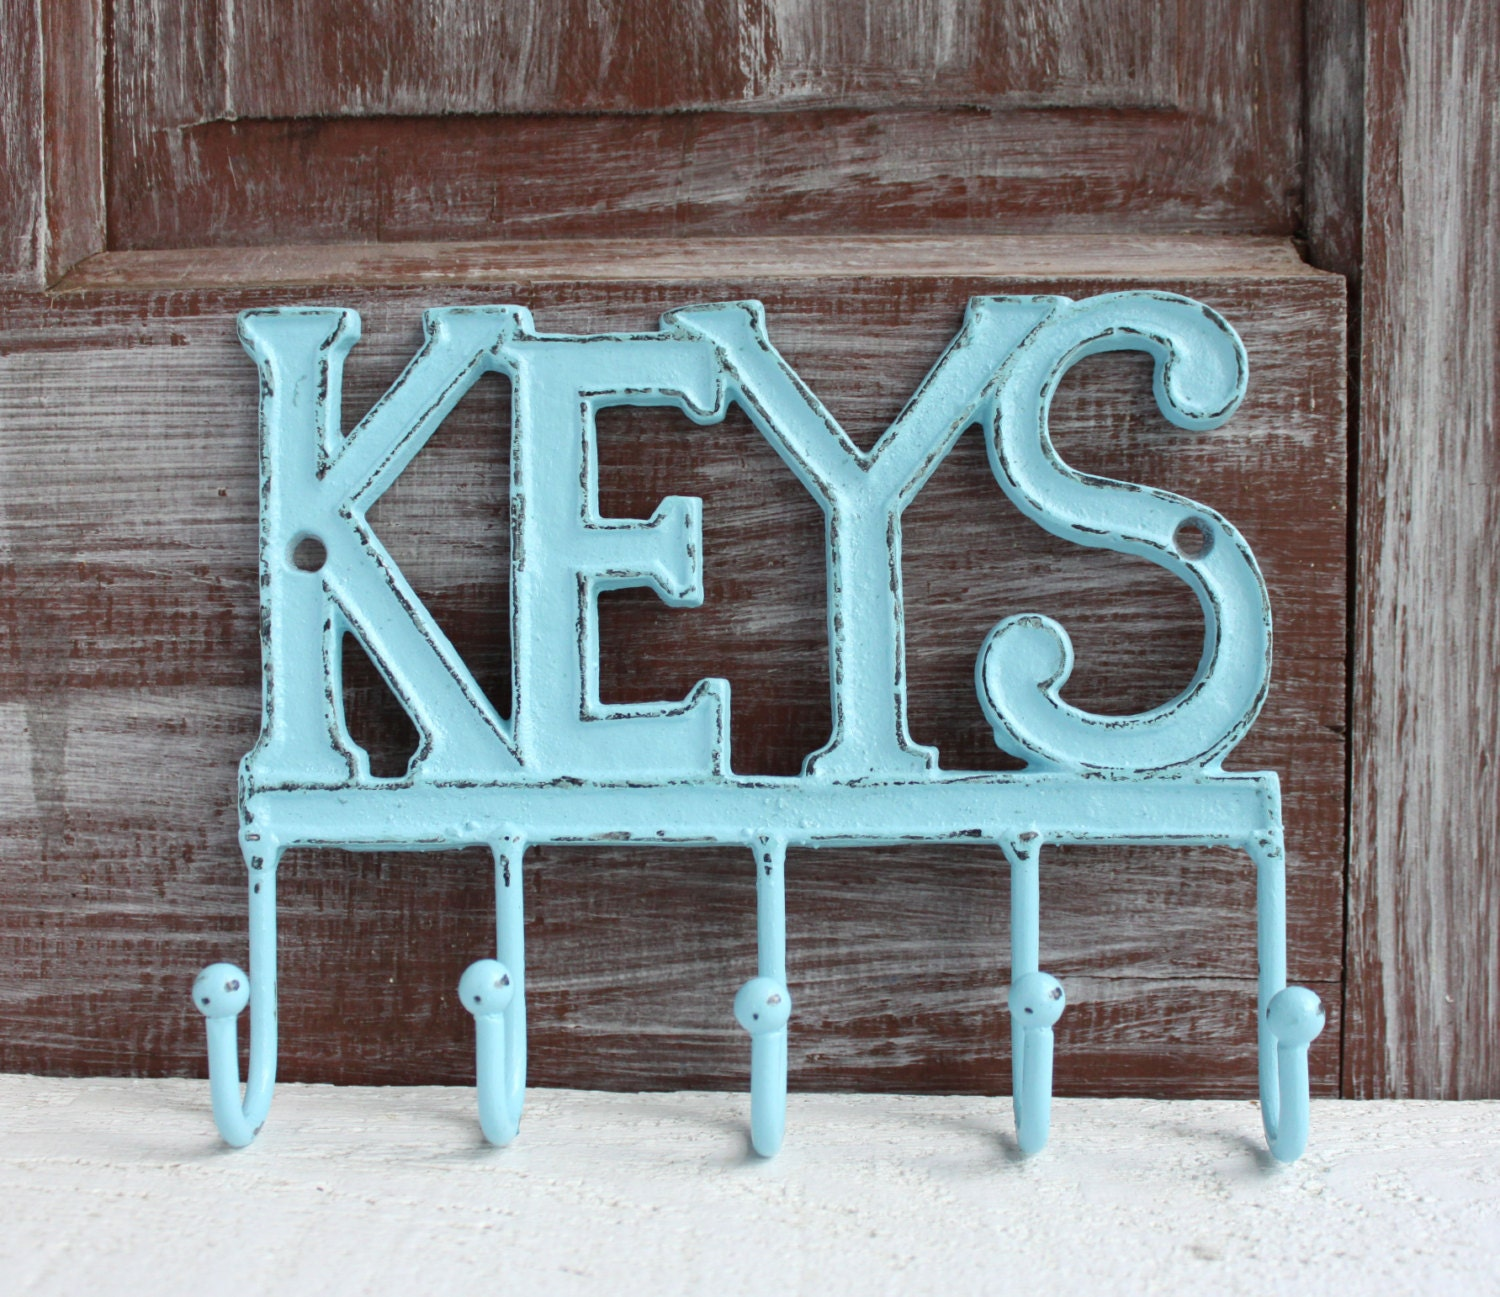 Wall Key Holder Metal Key Hanger Decorative Key Rack Cast